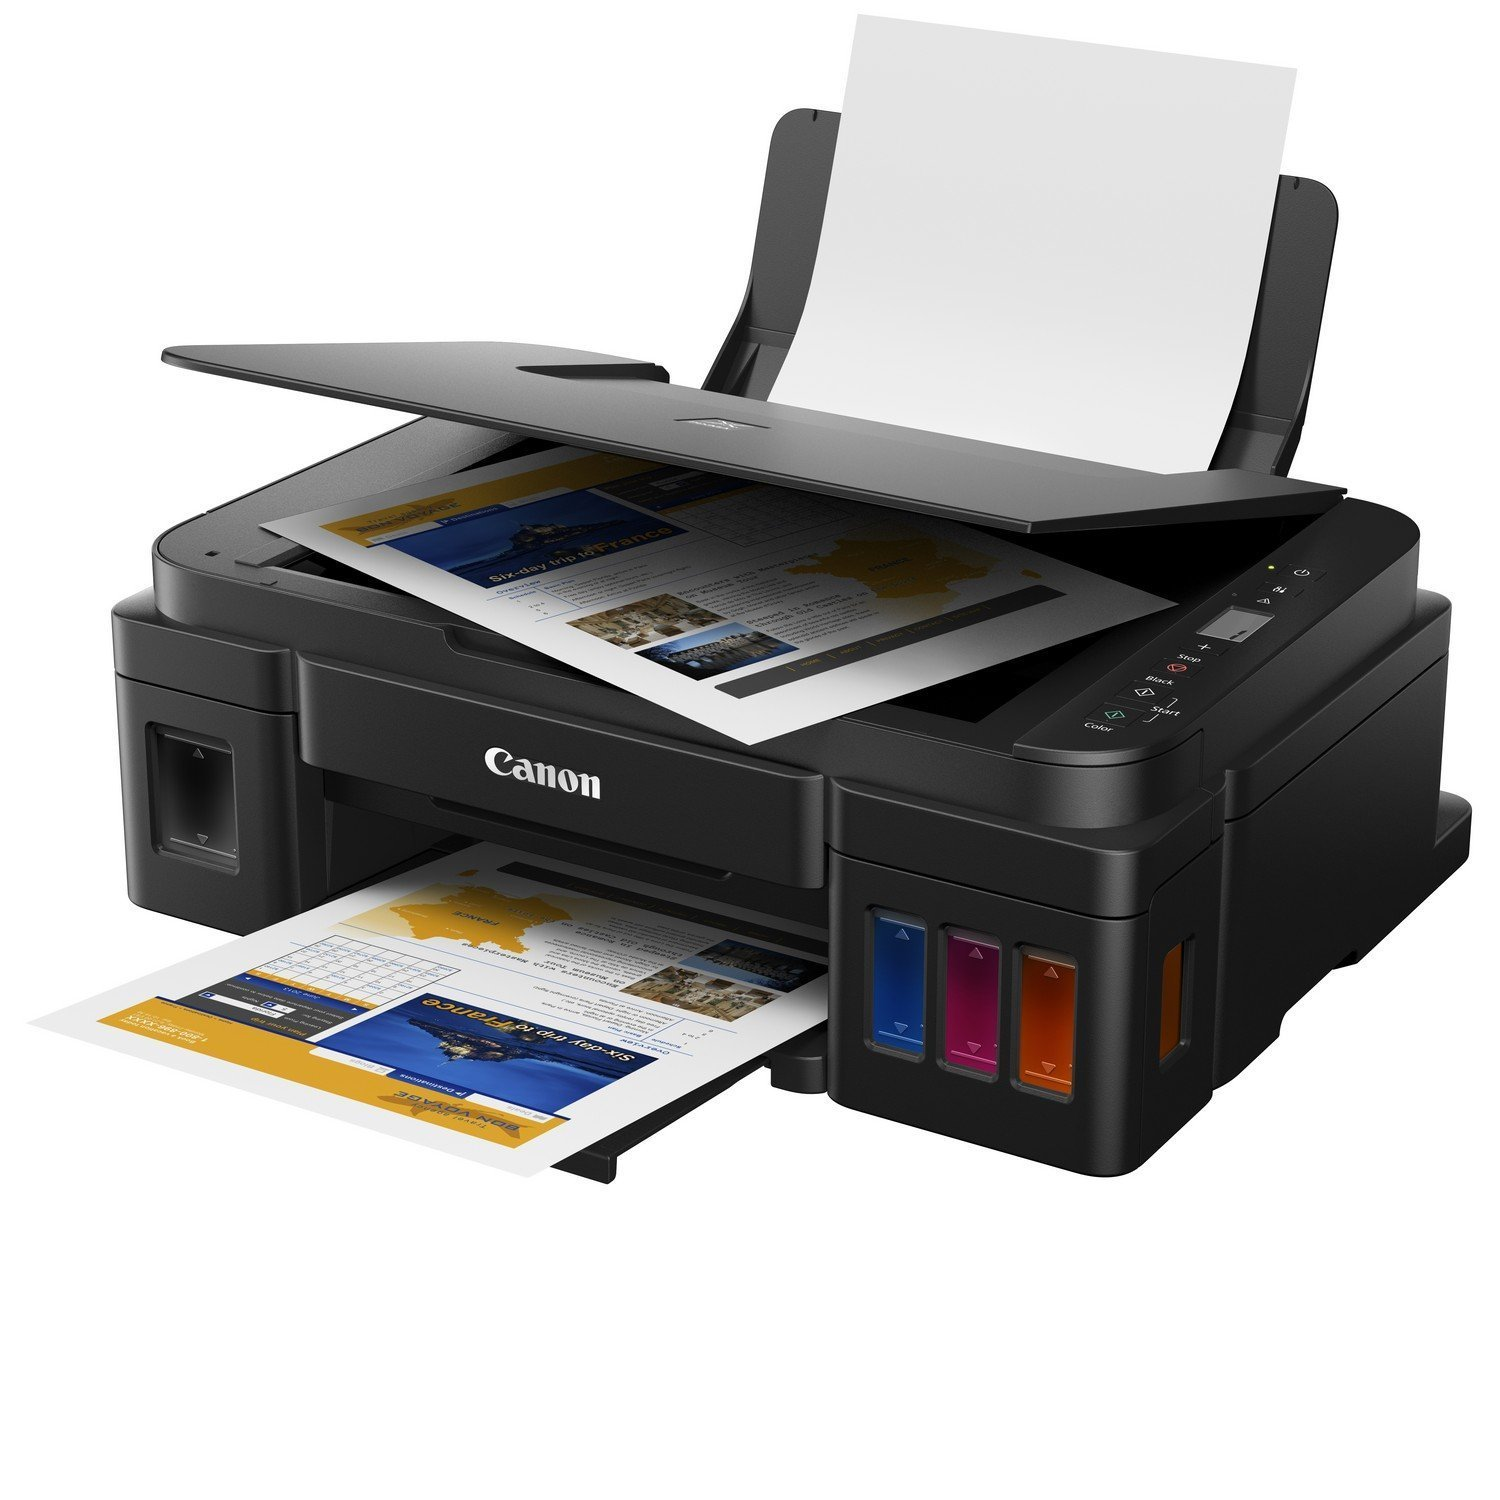 Amazon in: Buy Canon Pixma G2010 All in One Inkjet Printer